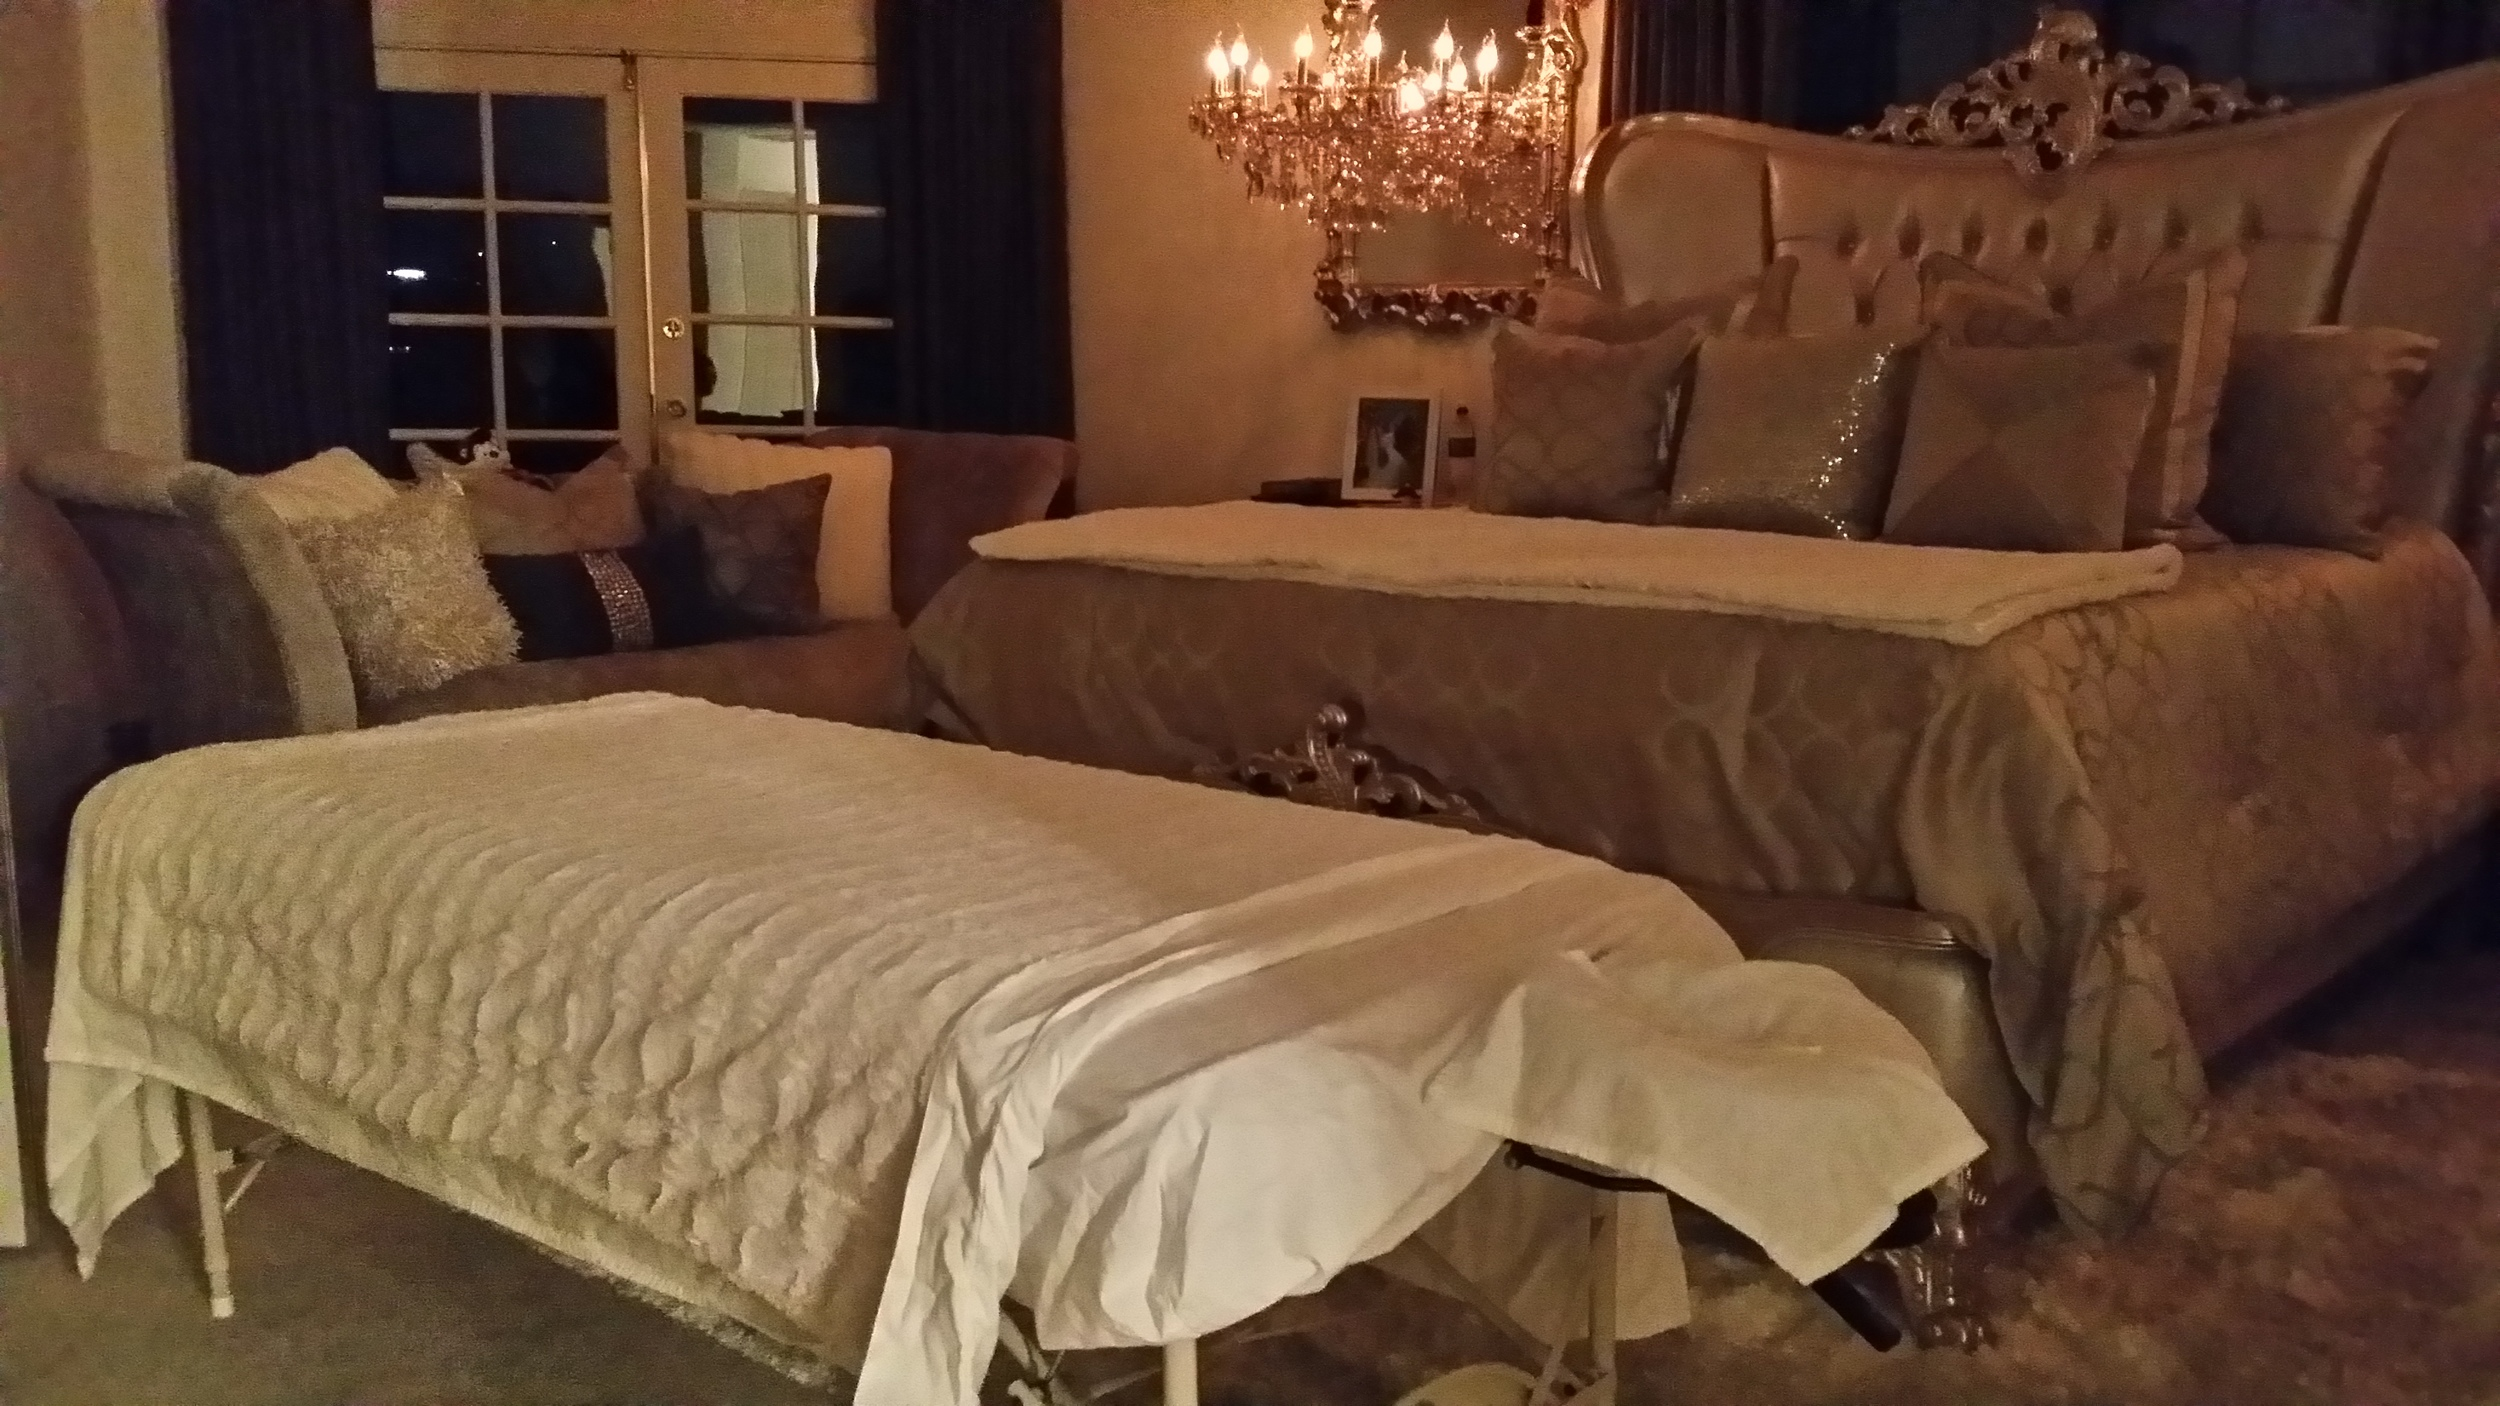 Ready to begin some serious relaxation. Massage set-up at home of a regular client in Nichols Canyon - so beautiful it almost looks staged!